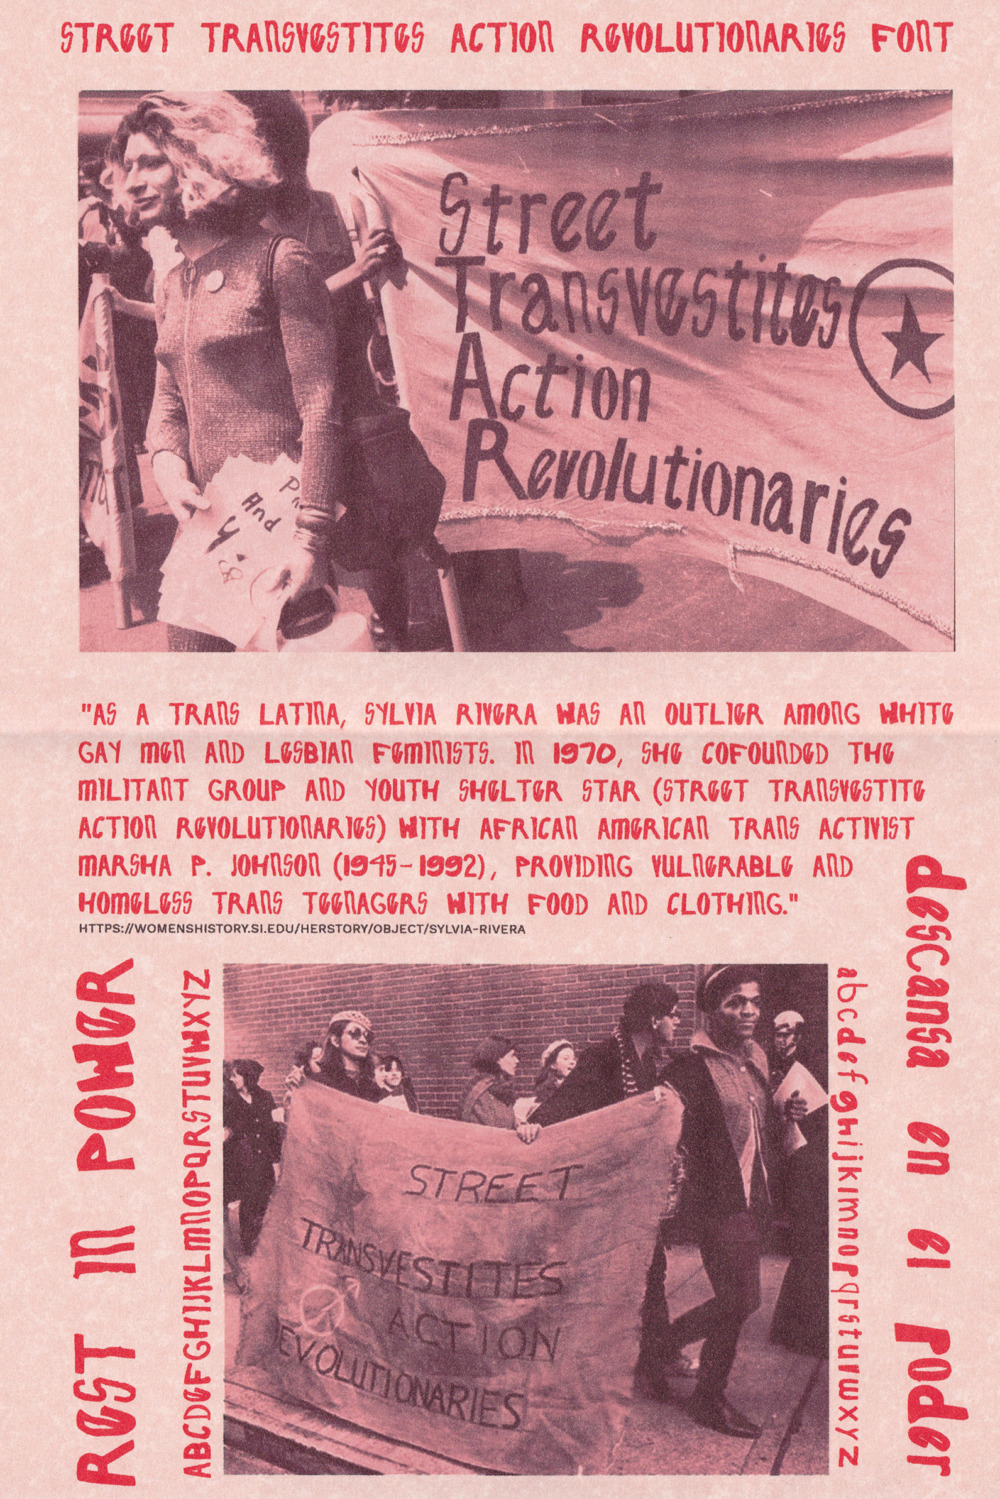 "Two photographs are on the page. The top photograph features a protestor standing in front of a sign that reads ""STREET TRANSVESTITES ACTION REVOLUTIONARIES"". The protester, Sylvia Rivera, is holding flyers. The second photograph is of marchers carrying a banner with the same text on a sidewalk. There's accompanying text between the two photographs. It is included below."